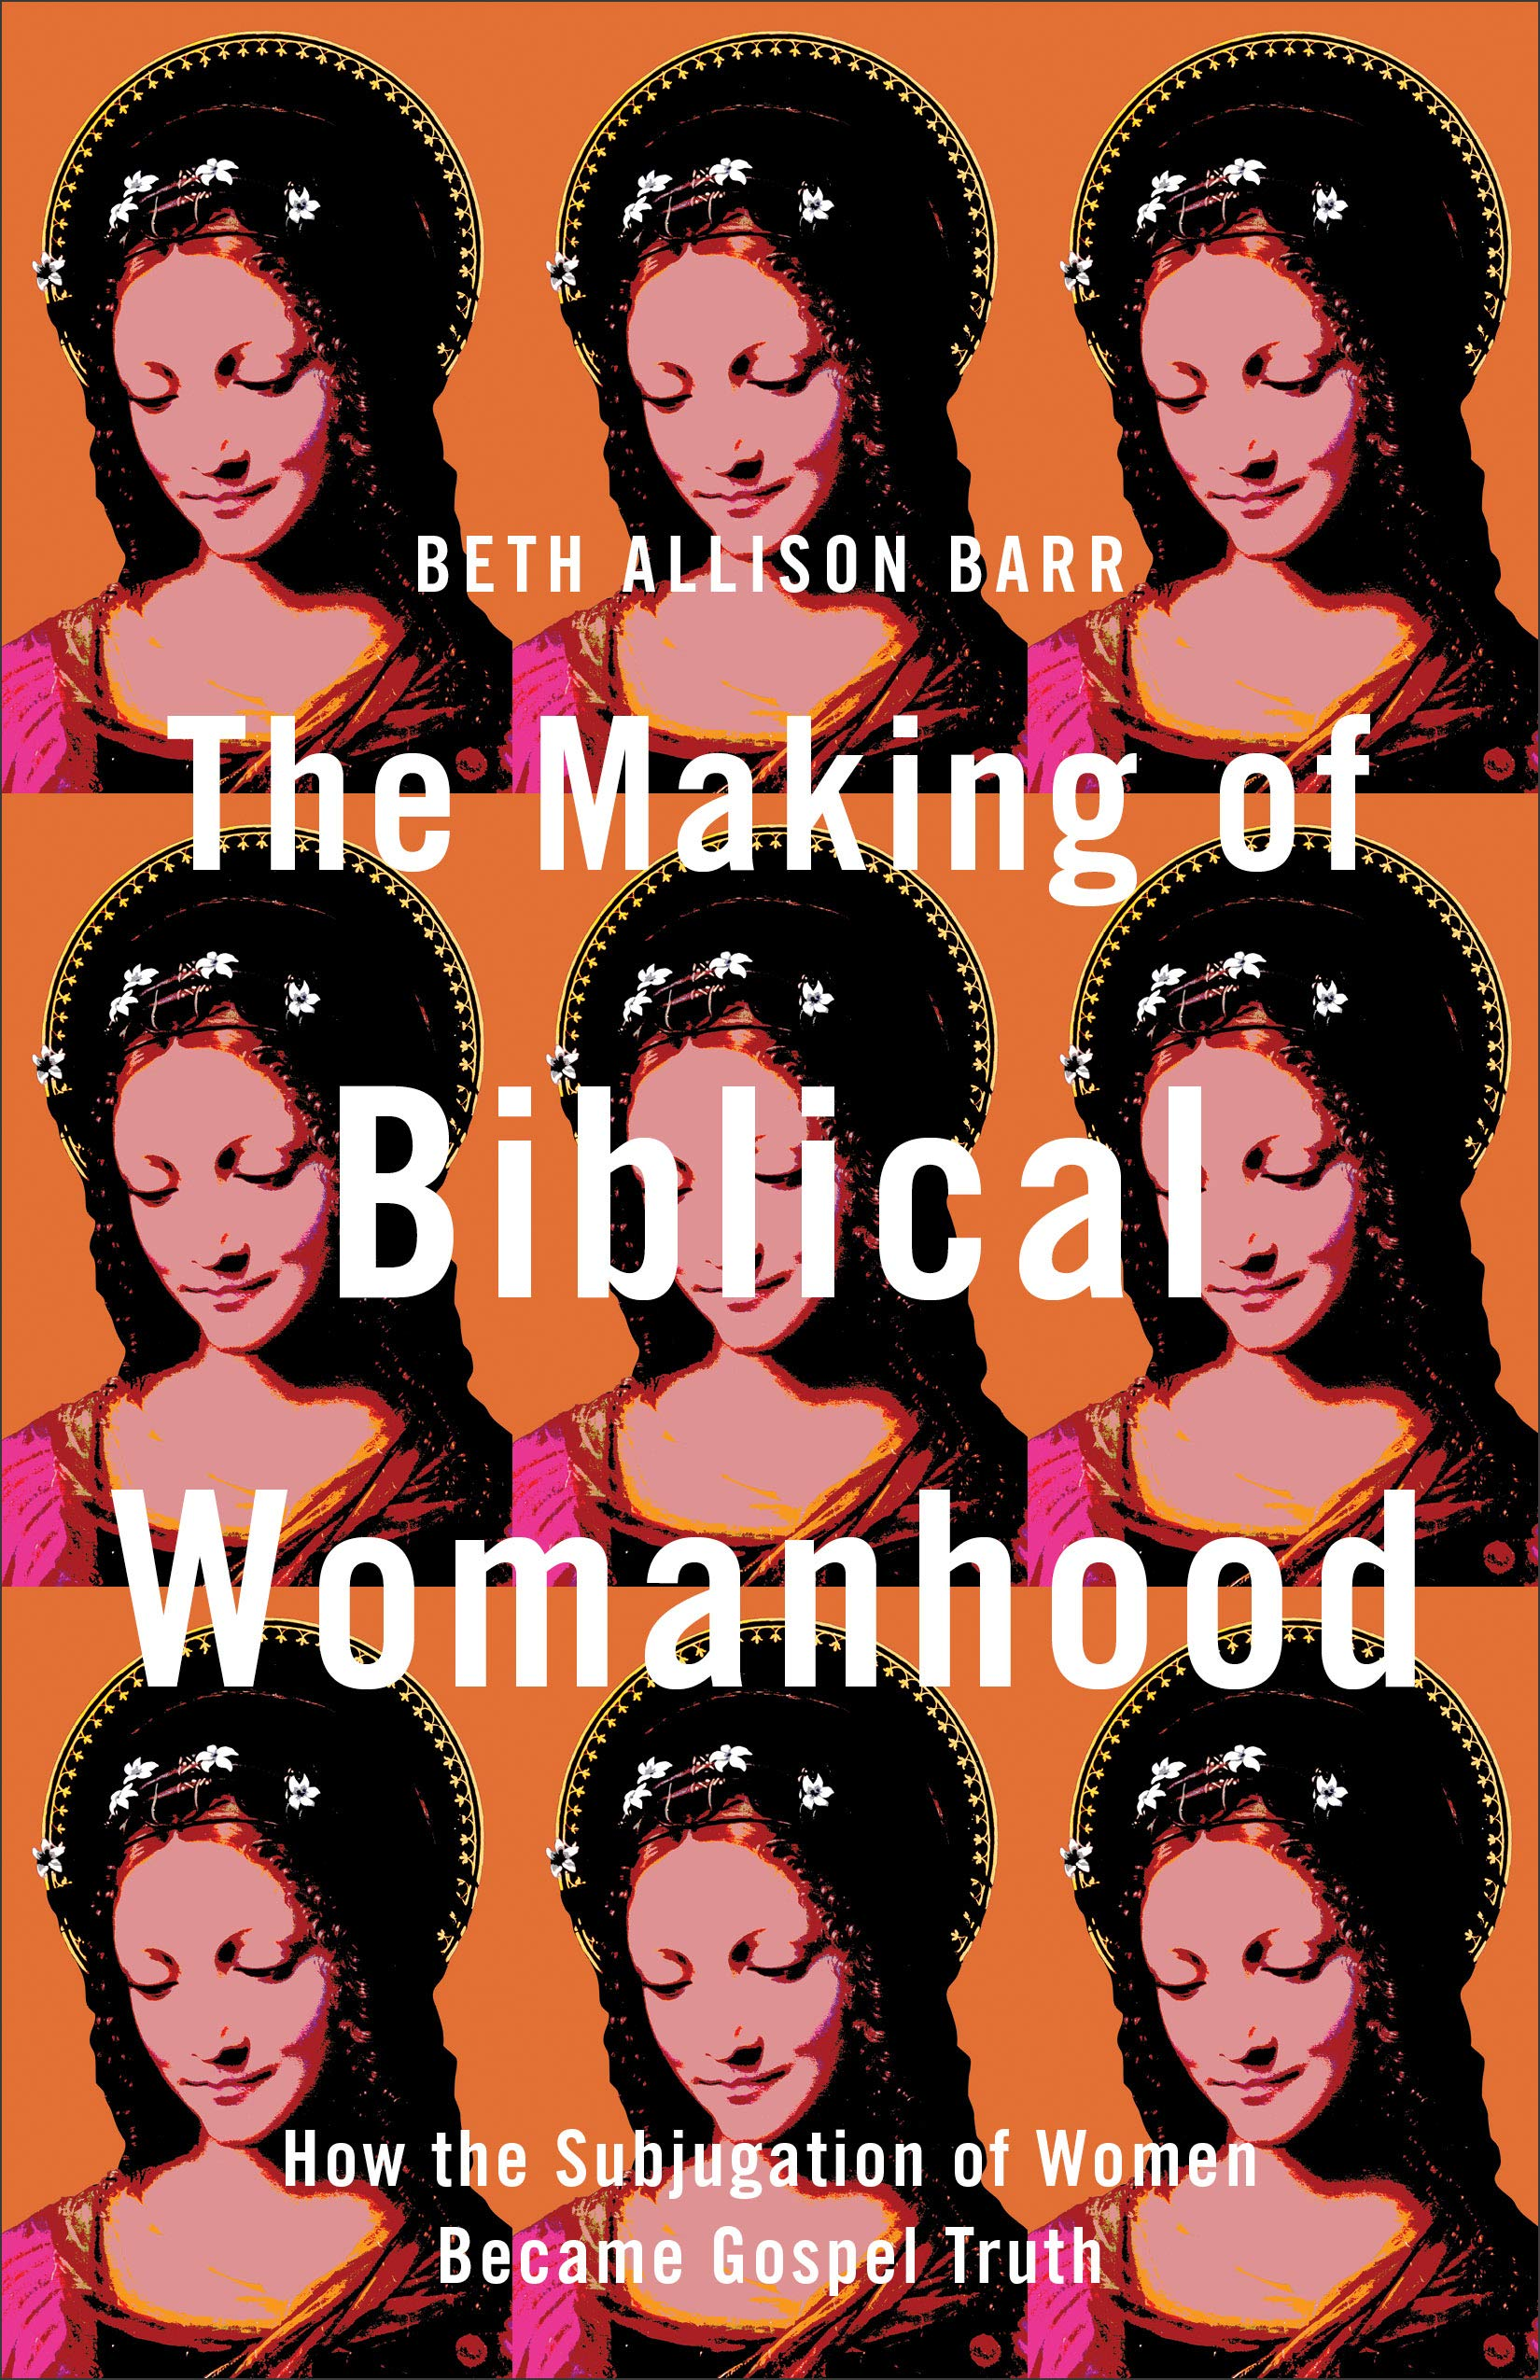 The Making of Biblical Womanhood: How the Subjugation of Women Became  Gospel Truth: Barr, Beth Allison: 9781587434709: Amazon.com: Books